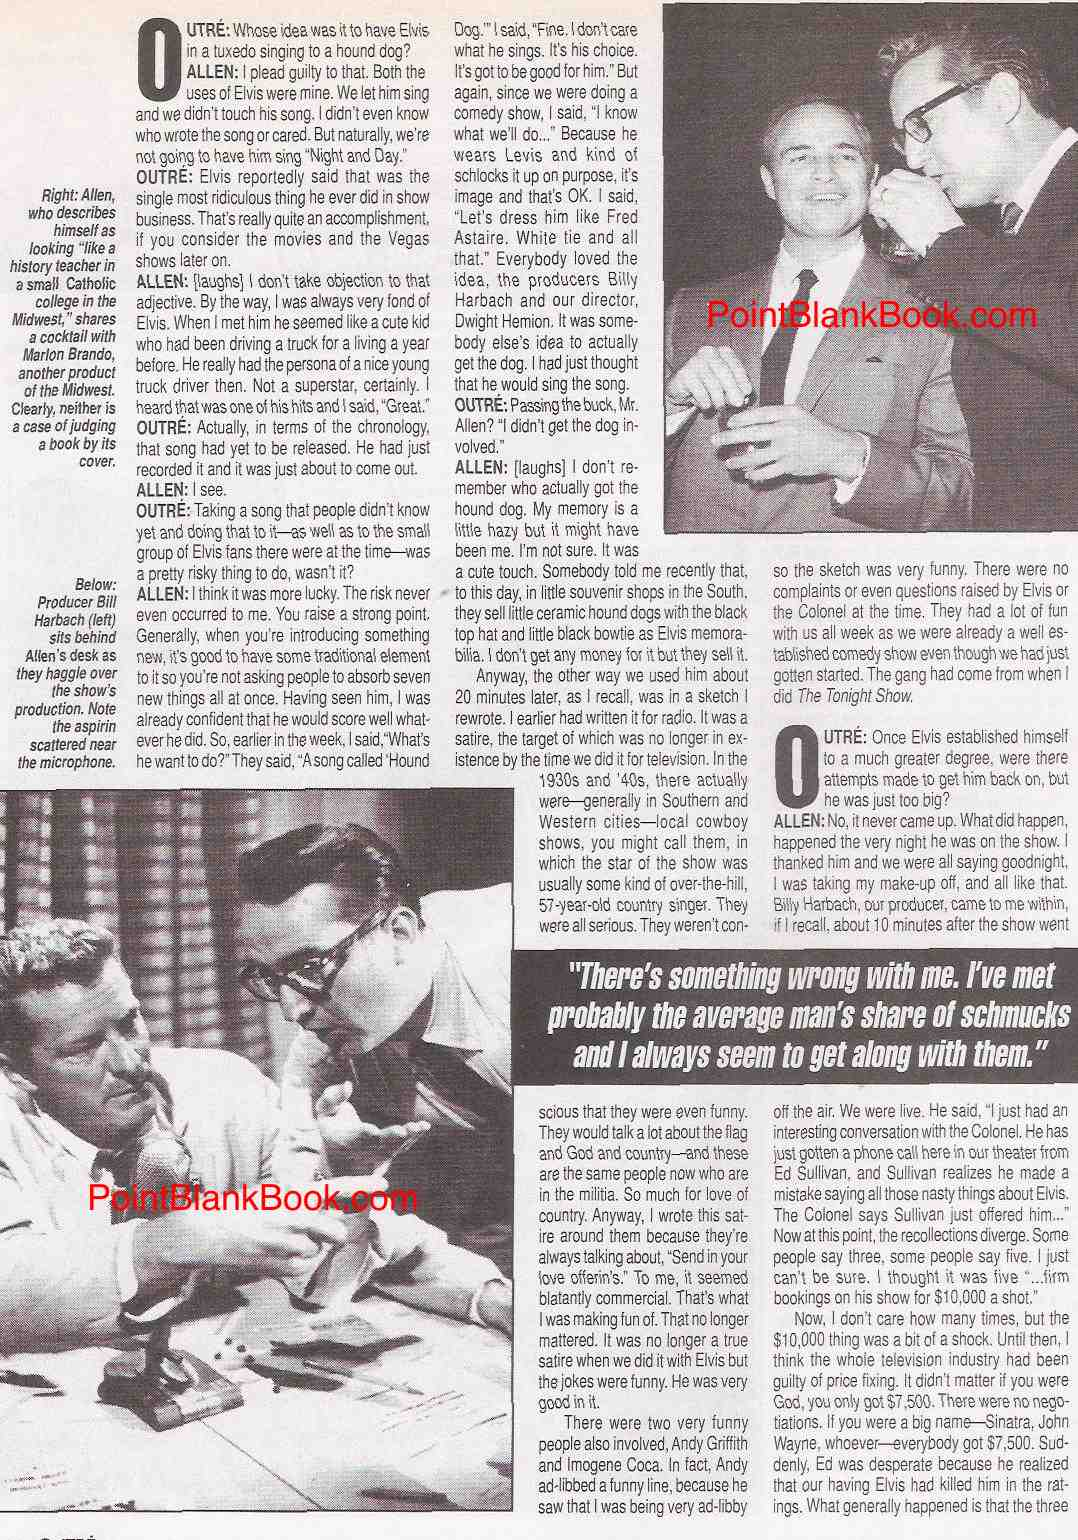 Steve Allen interview, page 5